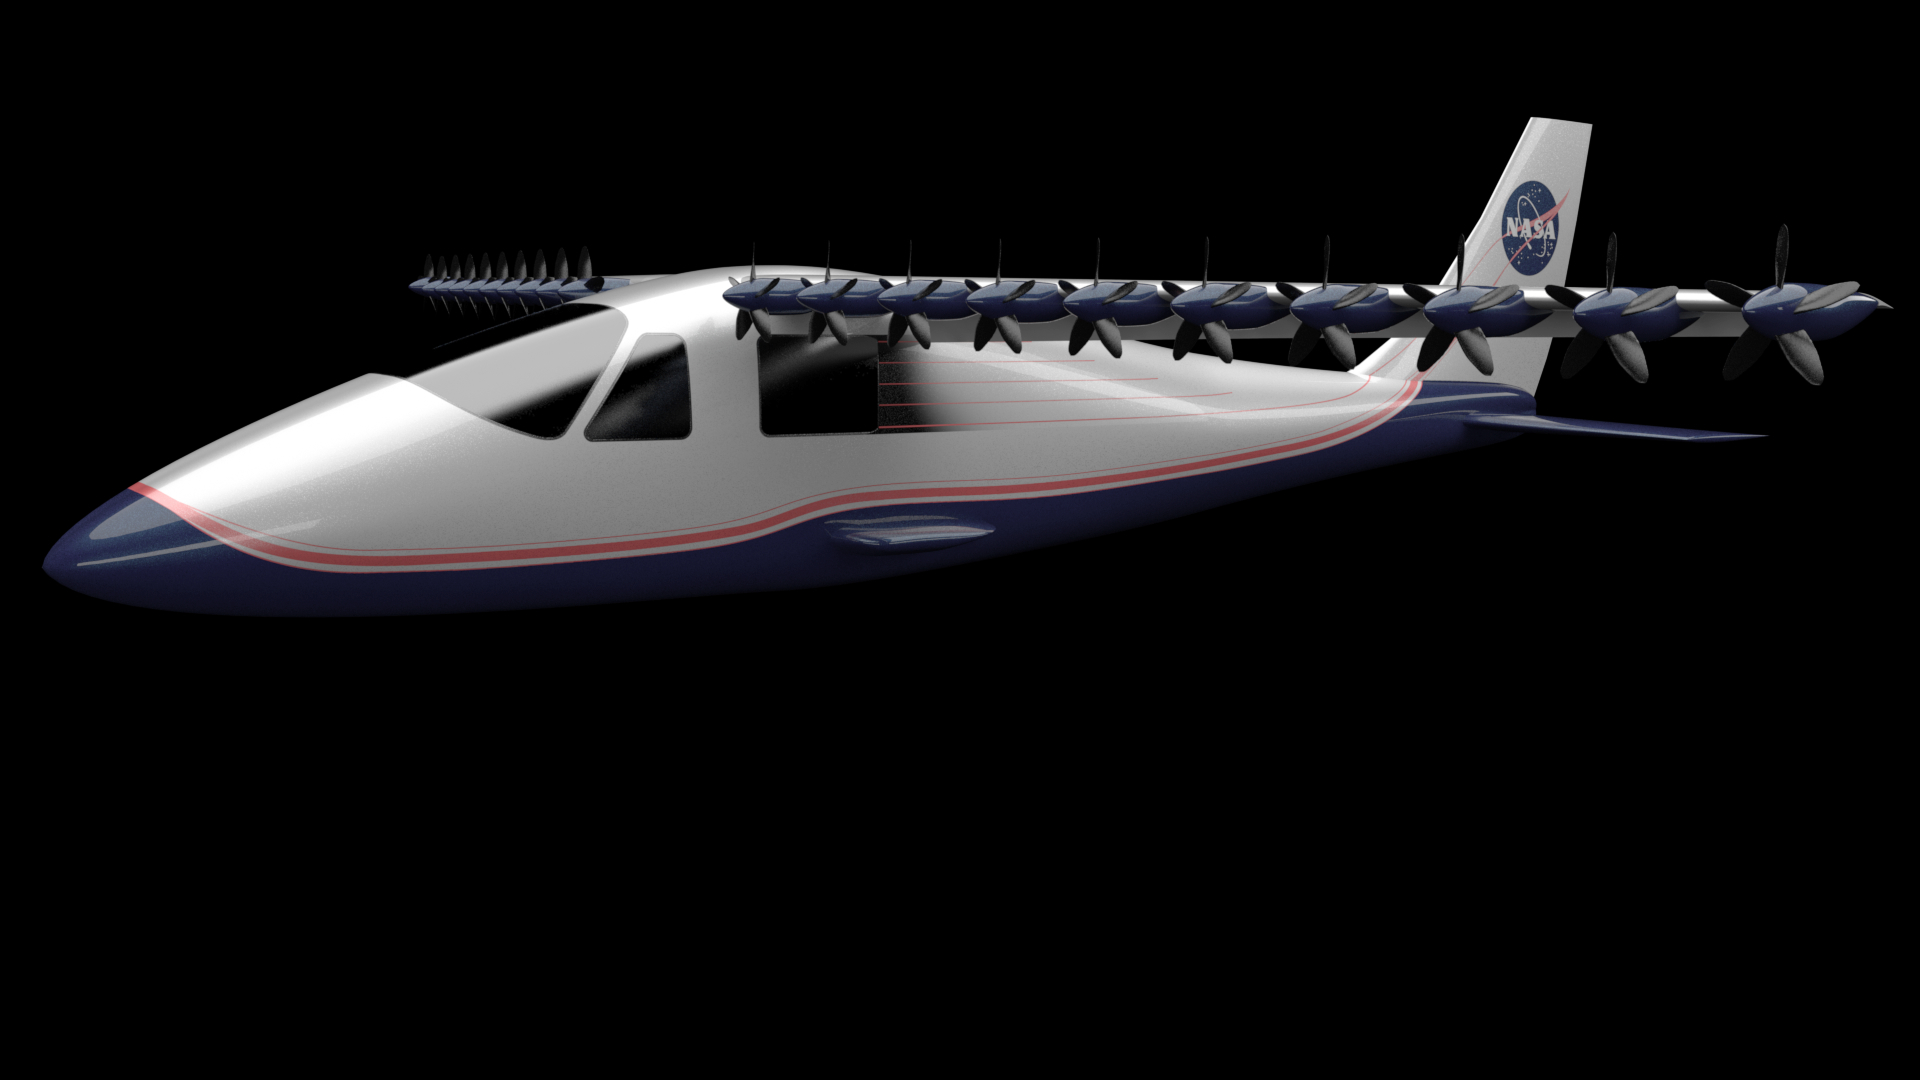 Electric Motors With Digital Control May Open New Horizons For - Examples future planes look according nasa